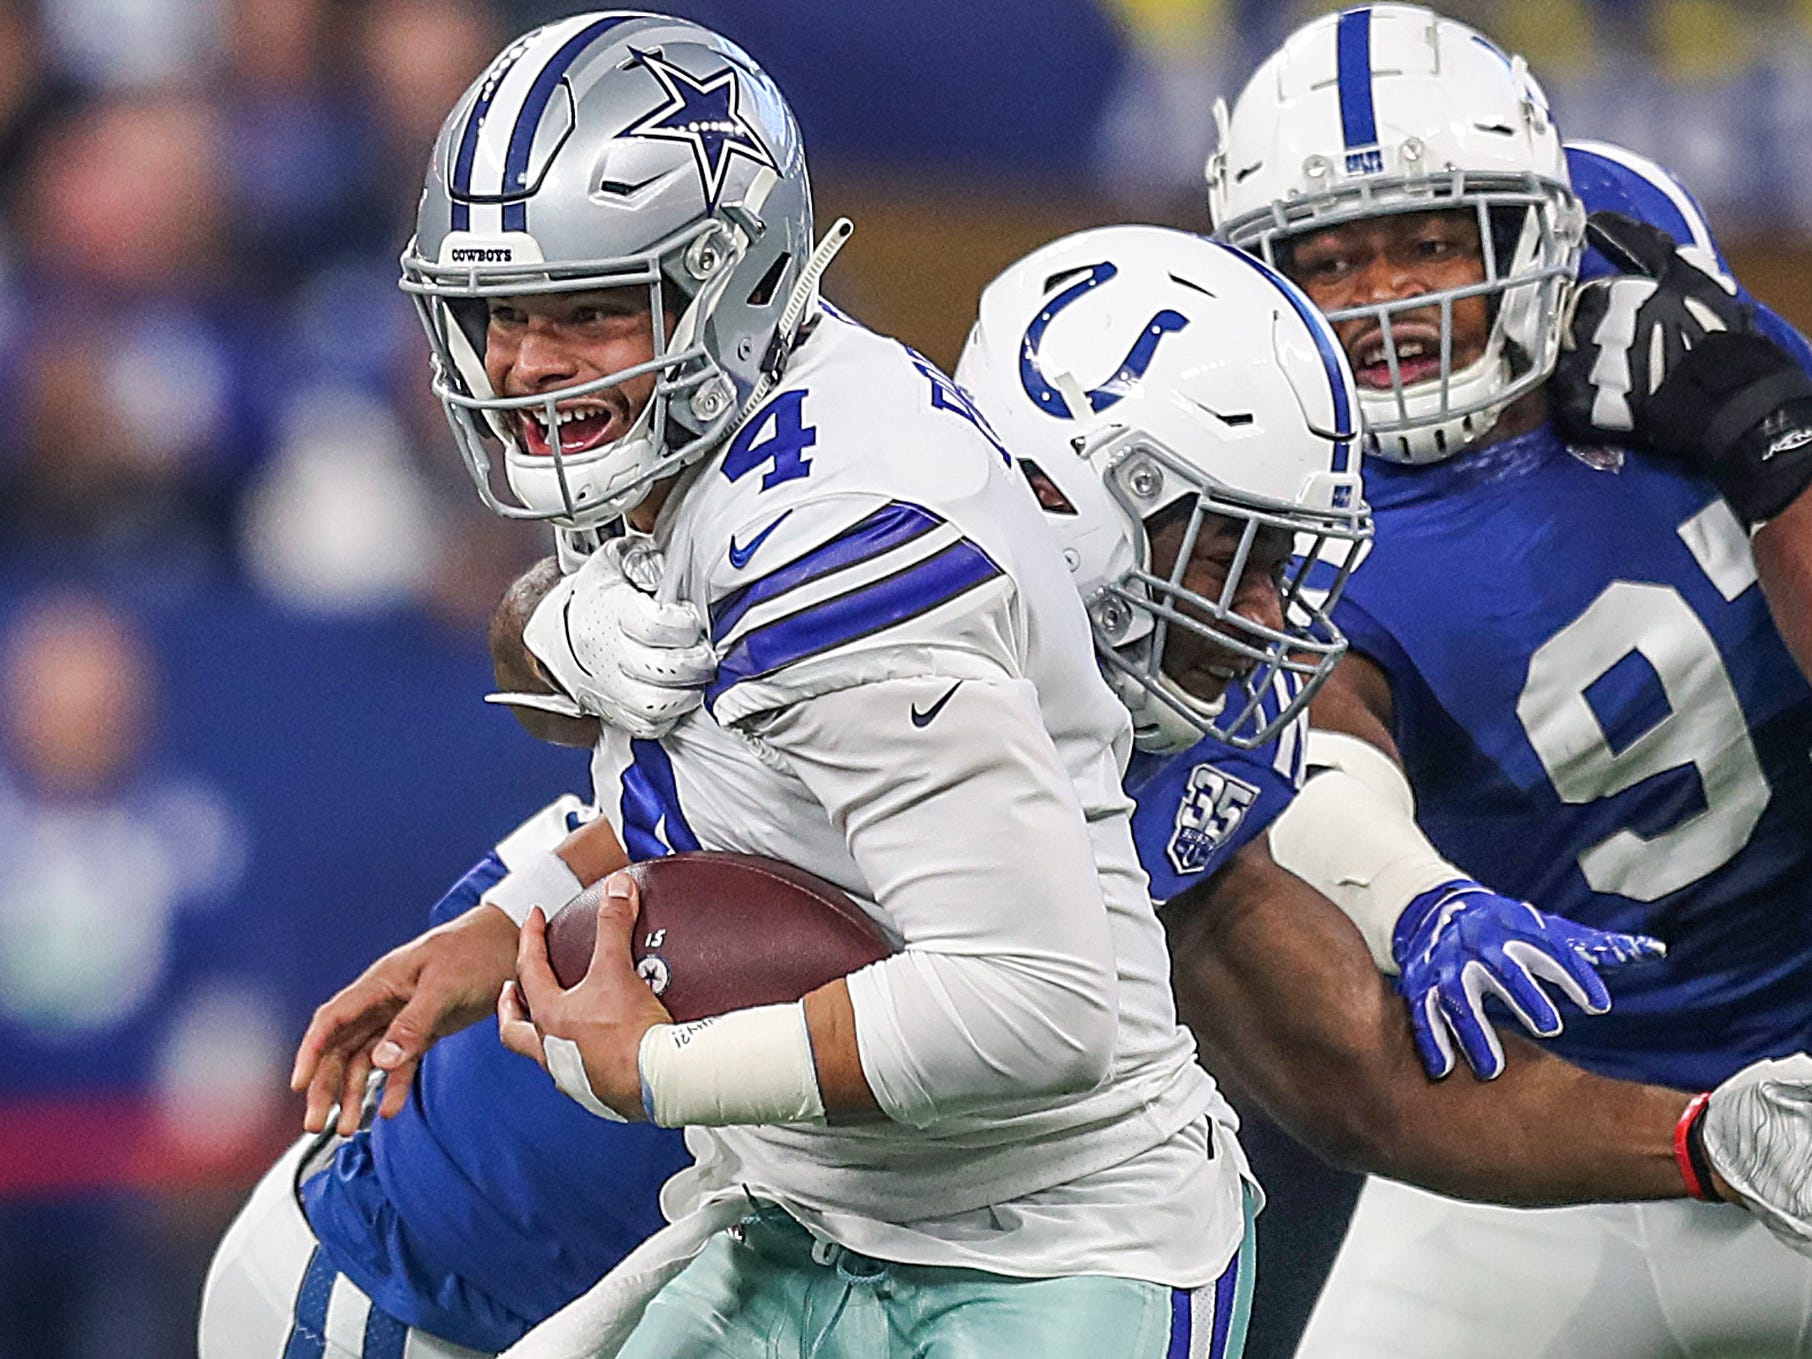 Indianapolis Colts defensive end Tyquan Lewis (94) sacks Dallas Cowboys quarterback Dak Prescott (4) in the first half of the game at Lucas Oil Stadium in Indianapolis, Sunday, Dec. 16, 2018.